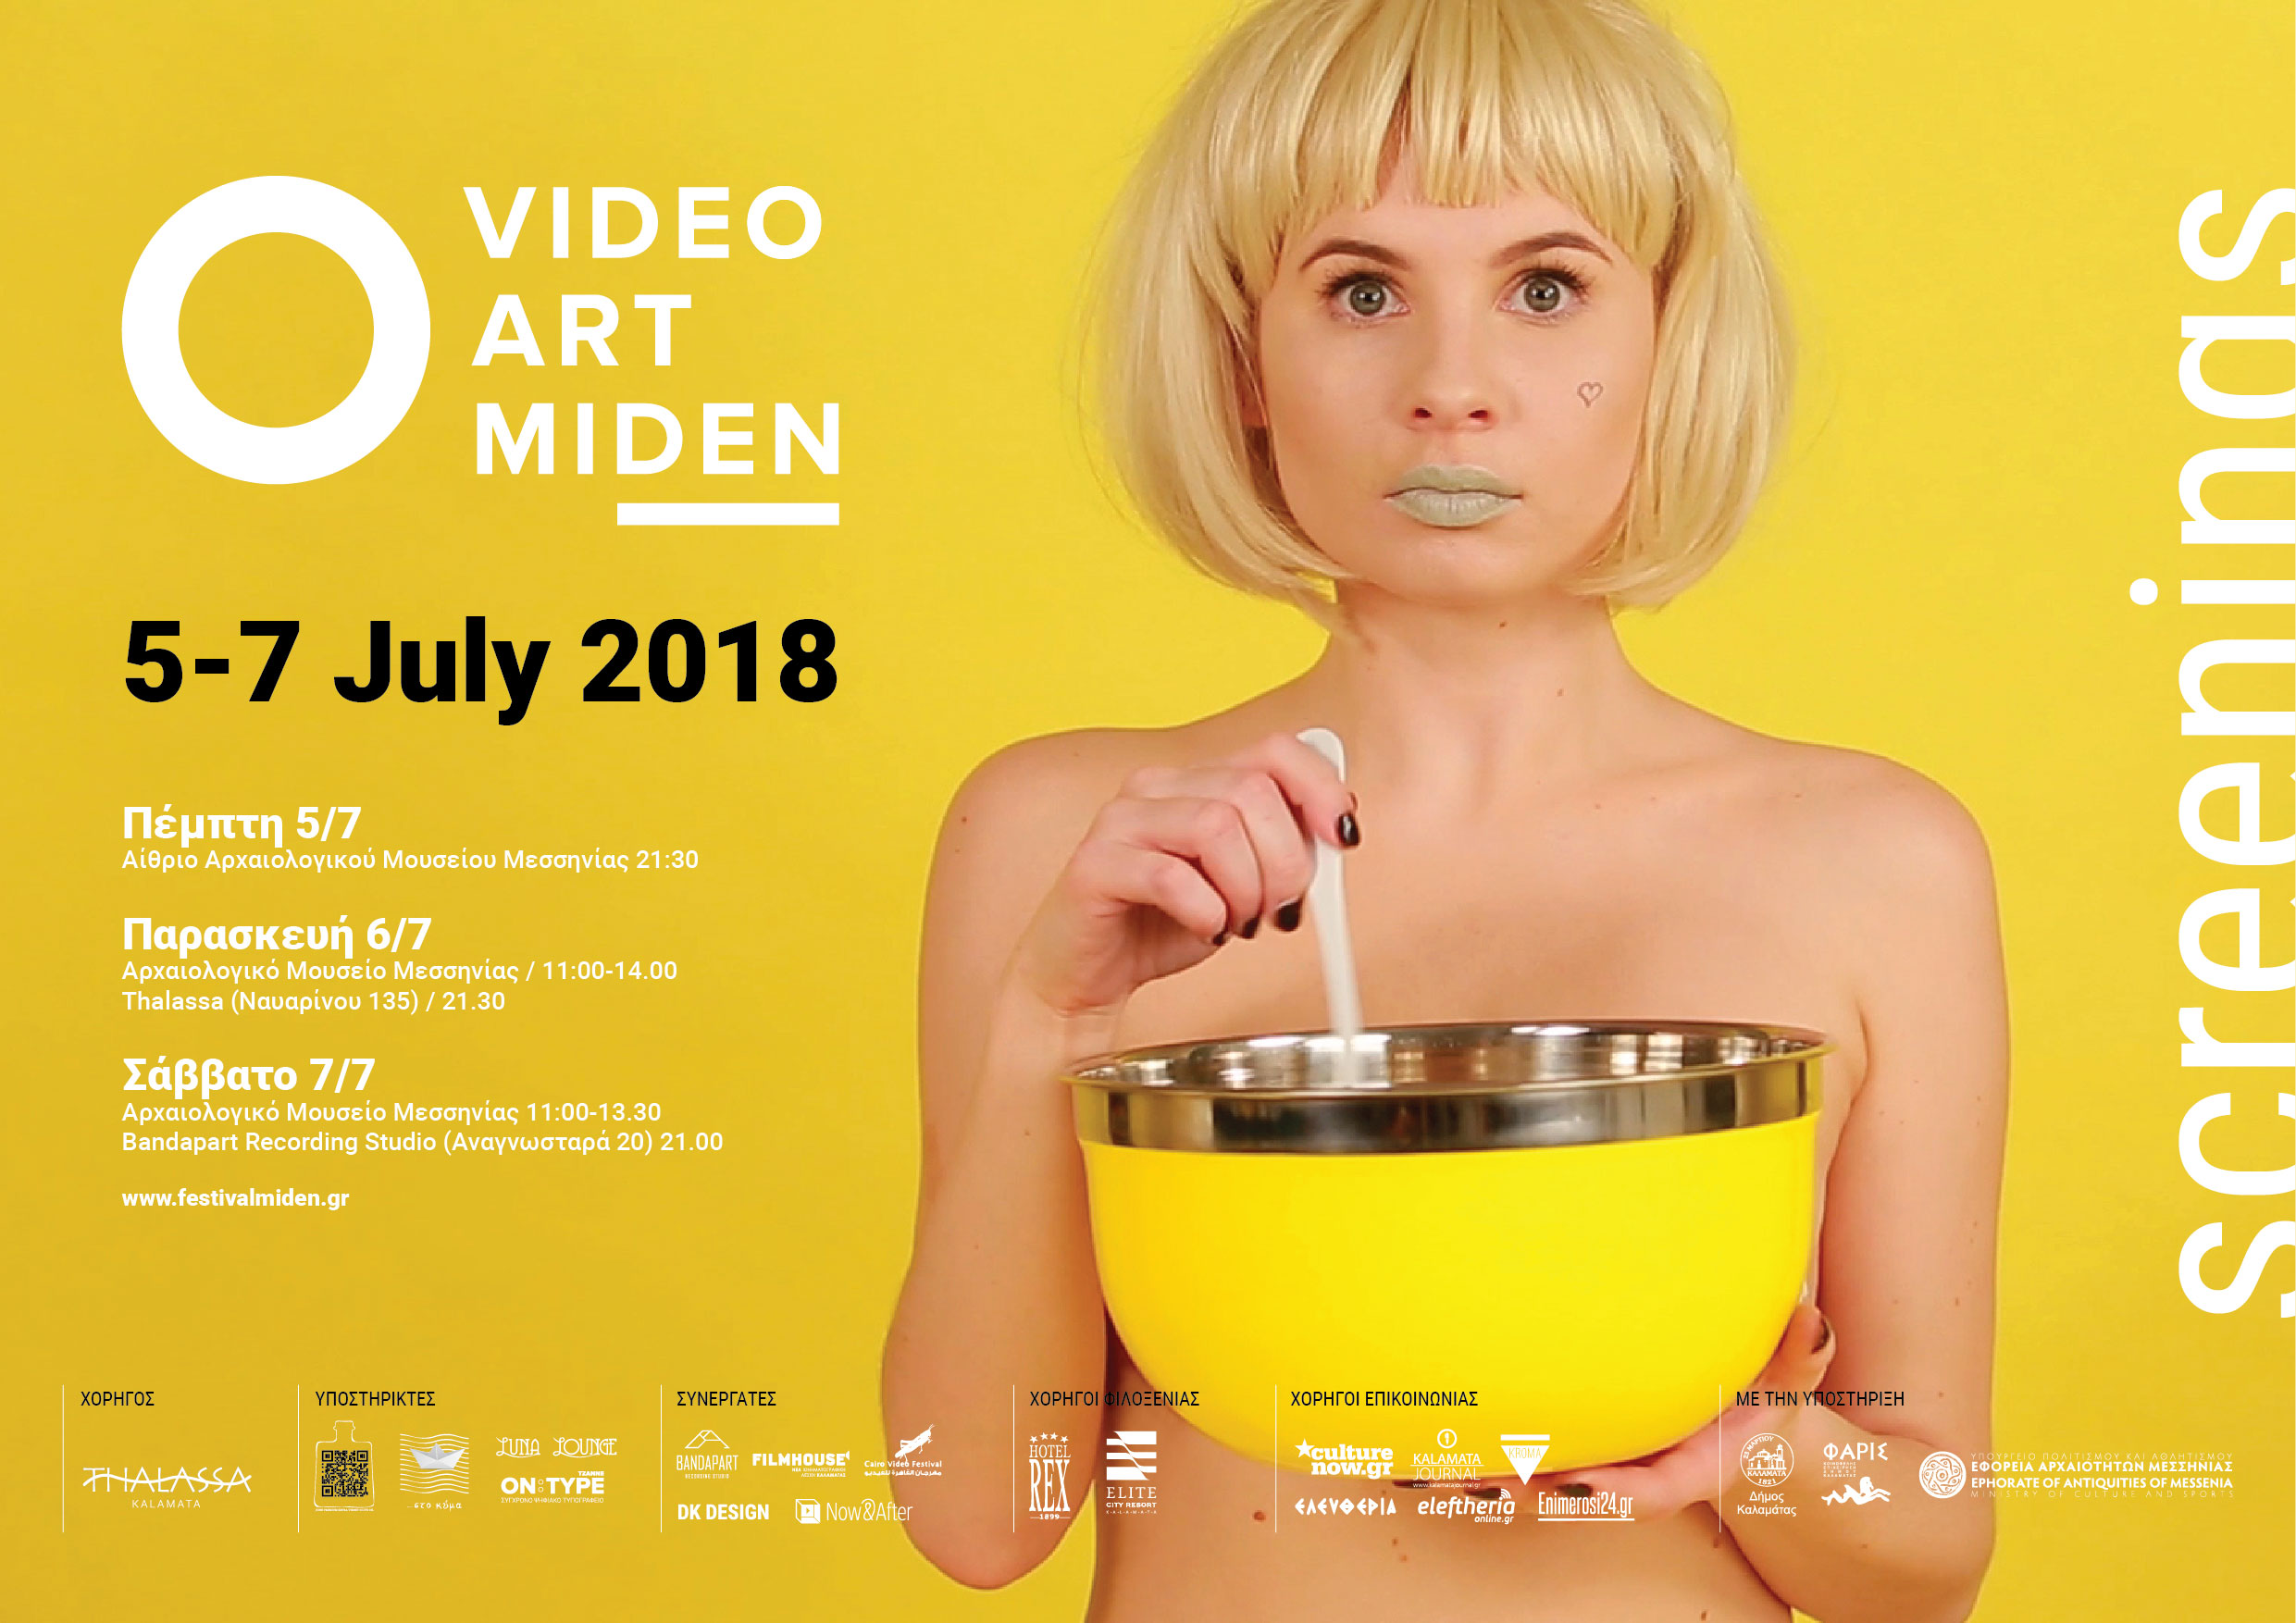 Poster_Video_Art_Miden_2018_web.jpg